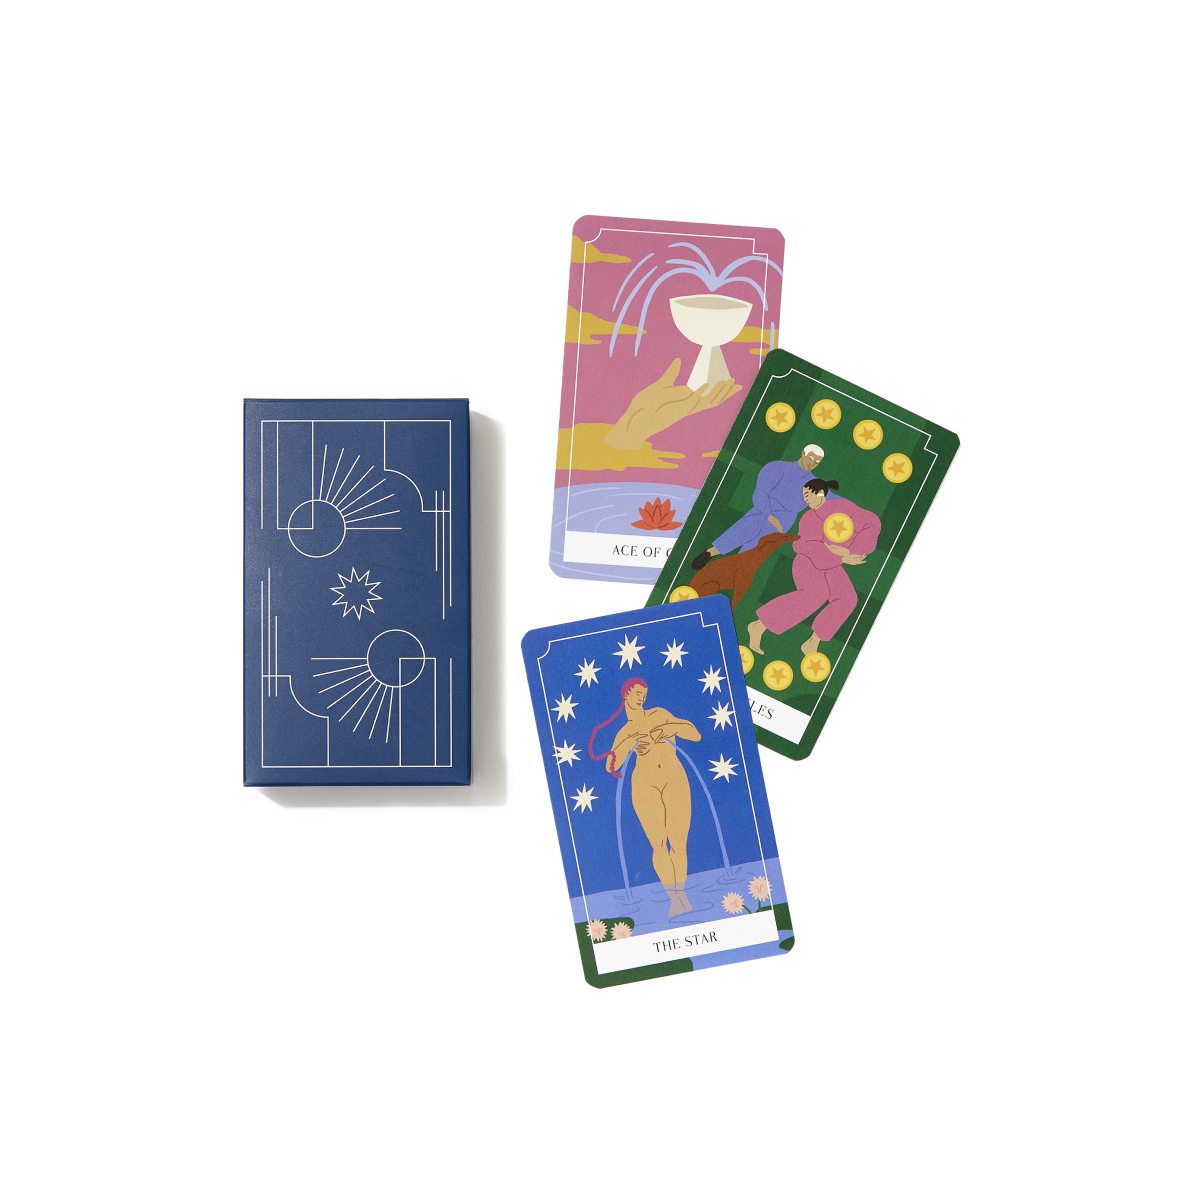 Chronicle Books Neo Tarot Deck